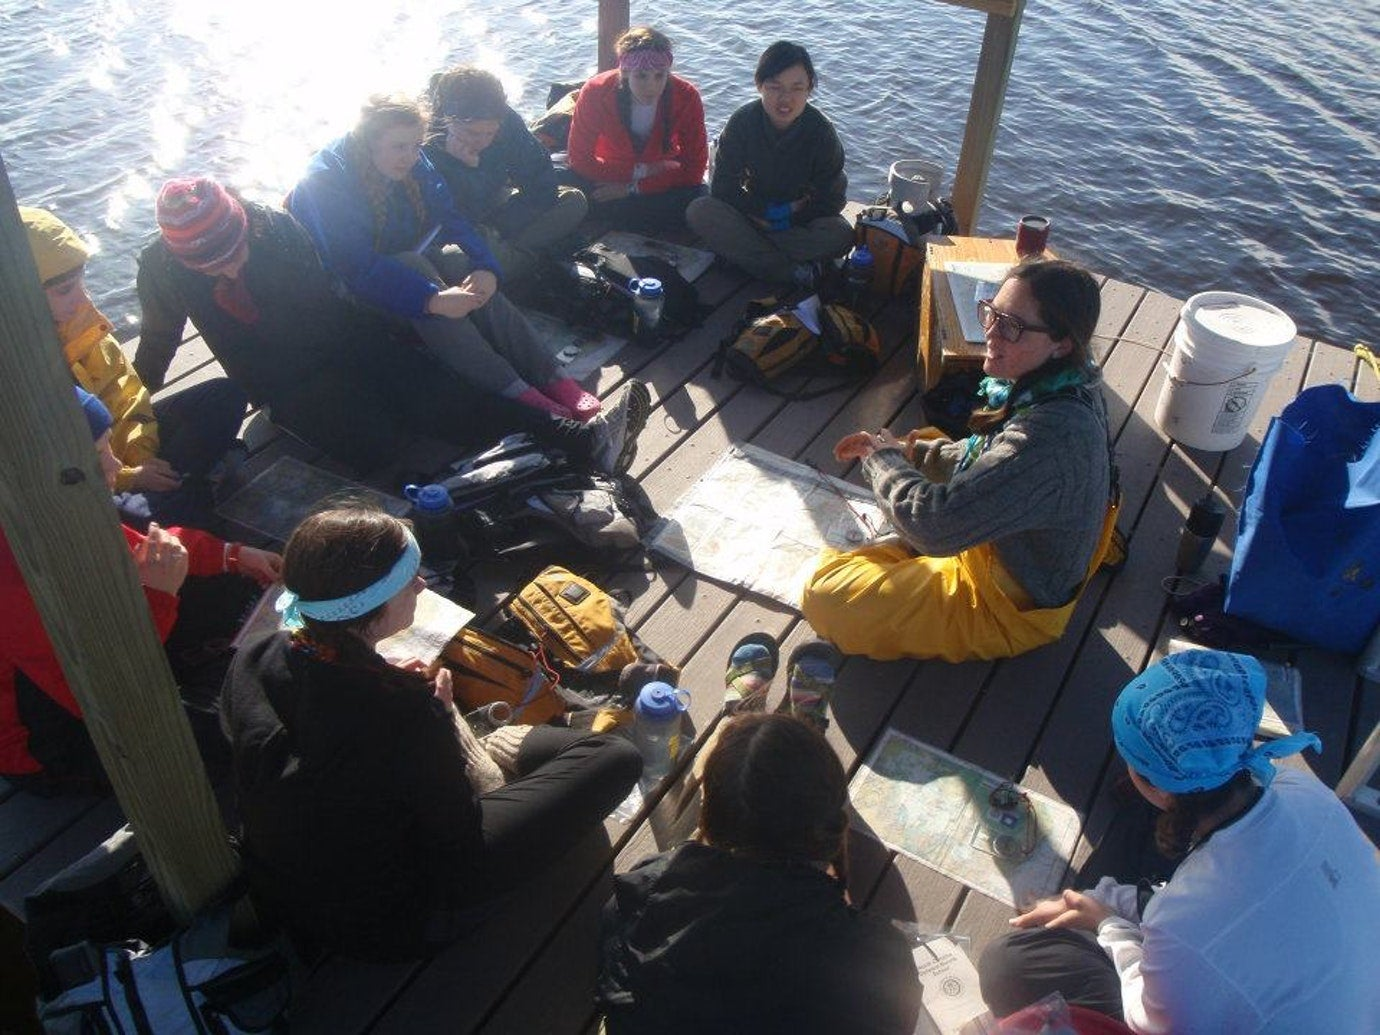 Fellow campers gather on the Everglades chickees, floating platforms on the Florida Bay.